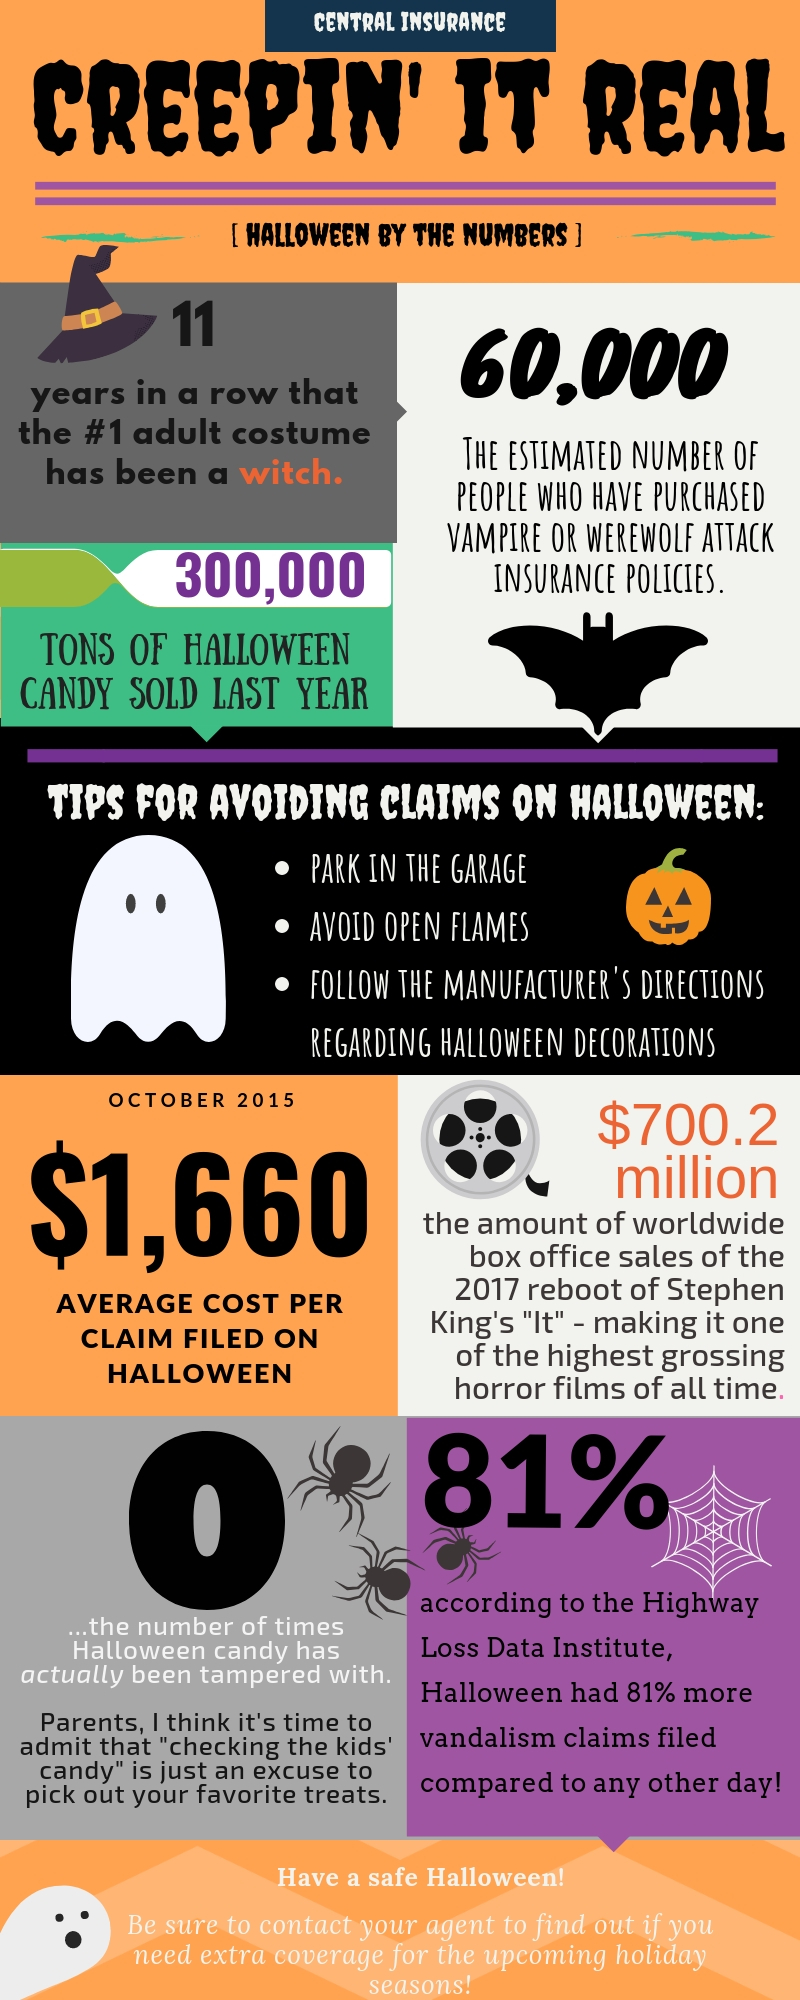 creepin' it real: halloweenthe numbers | central insurance companies